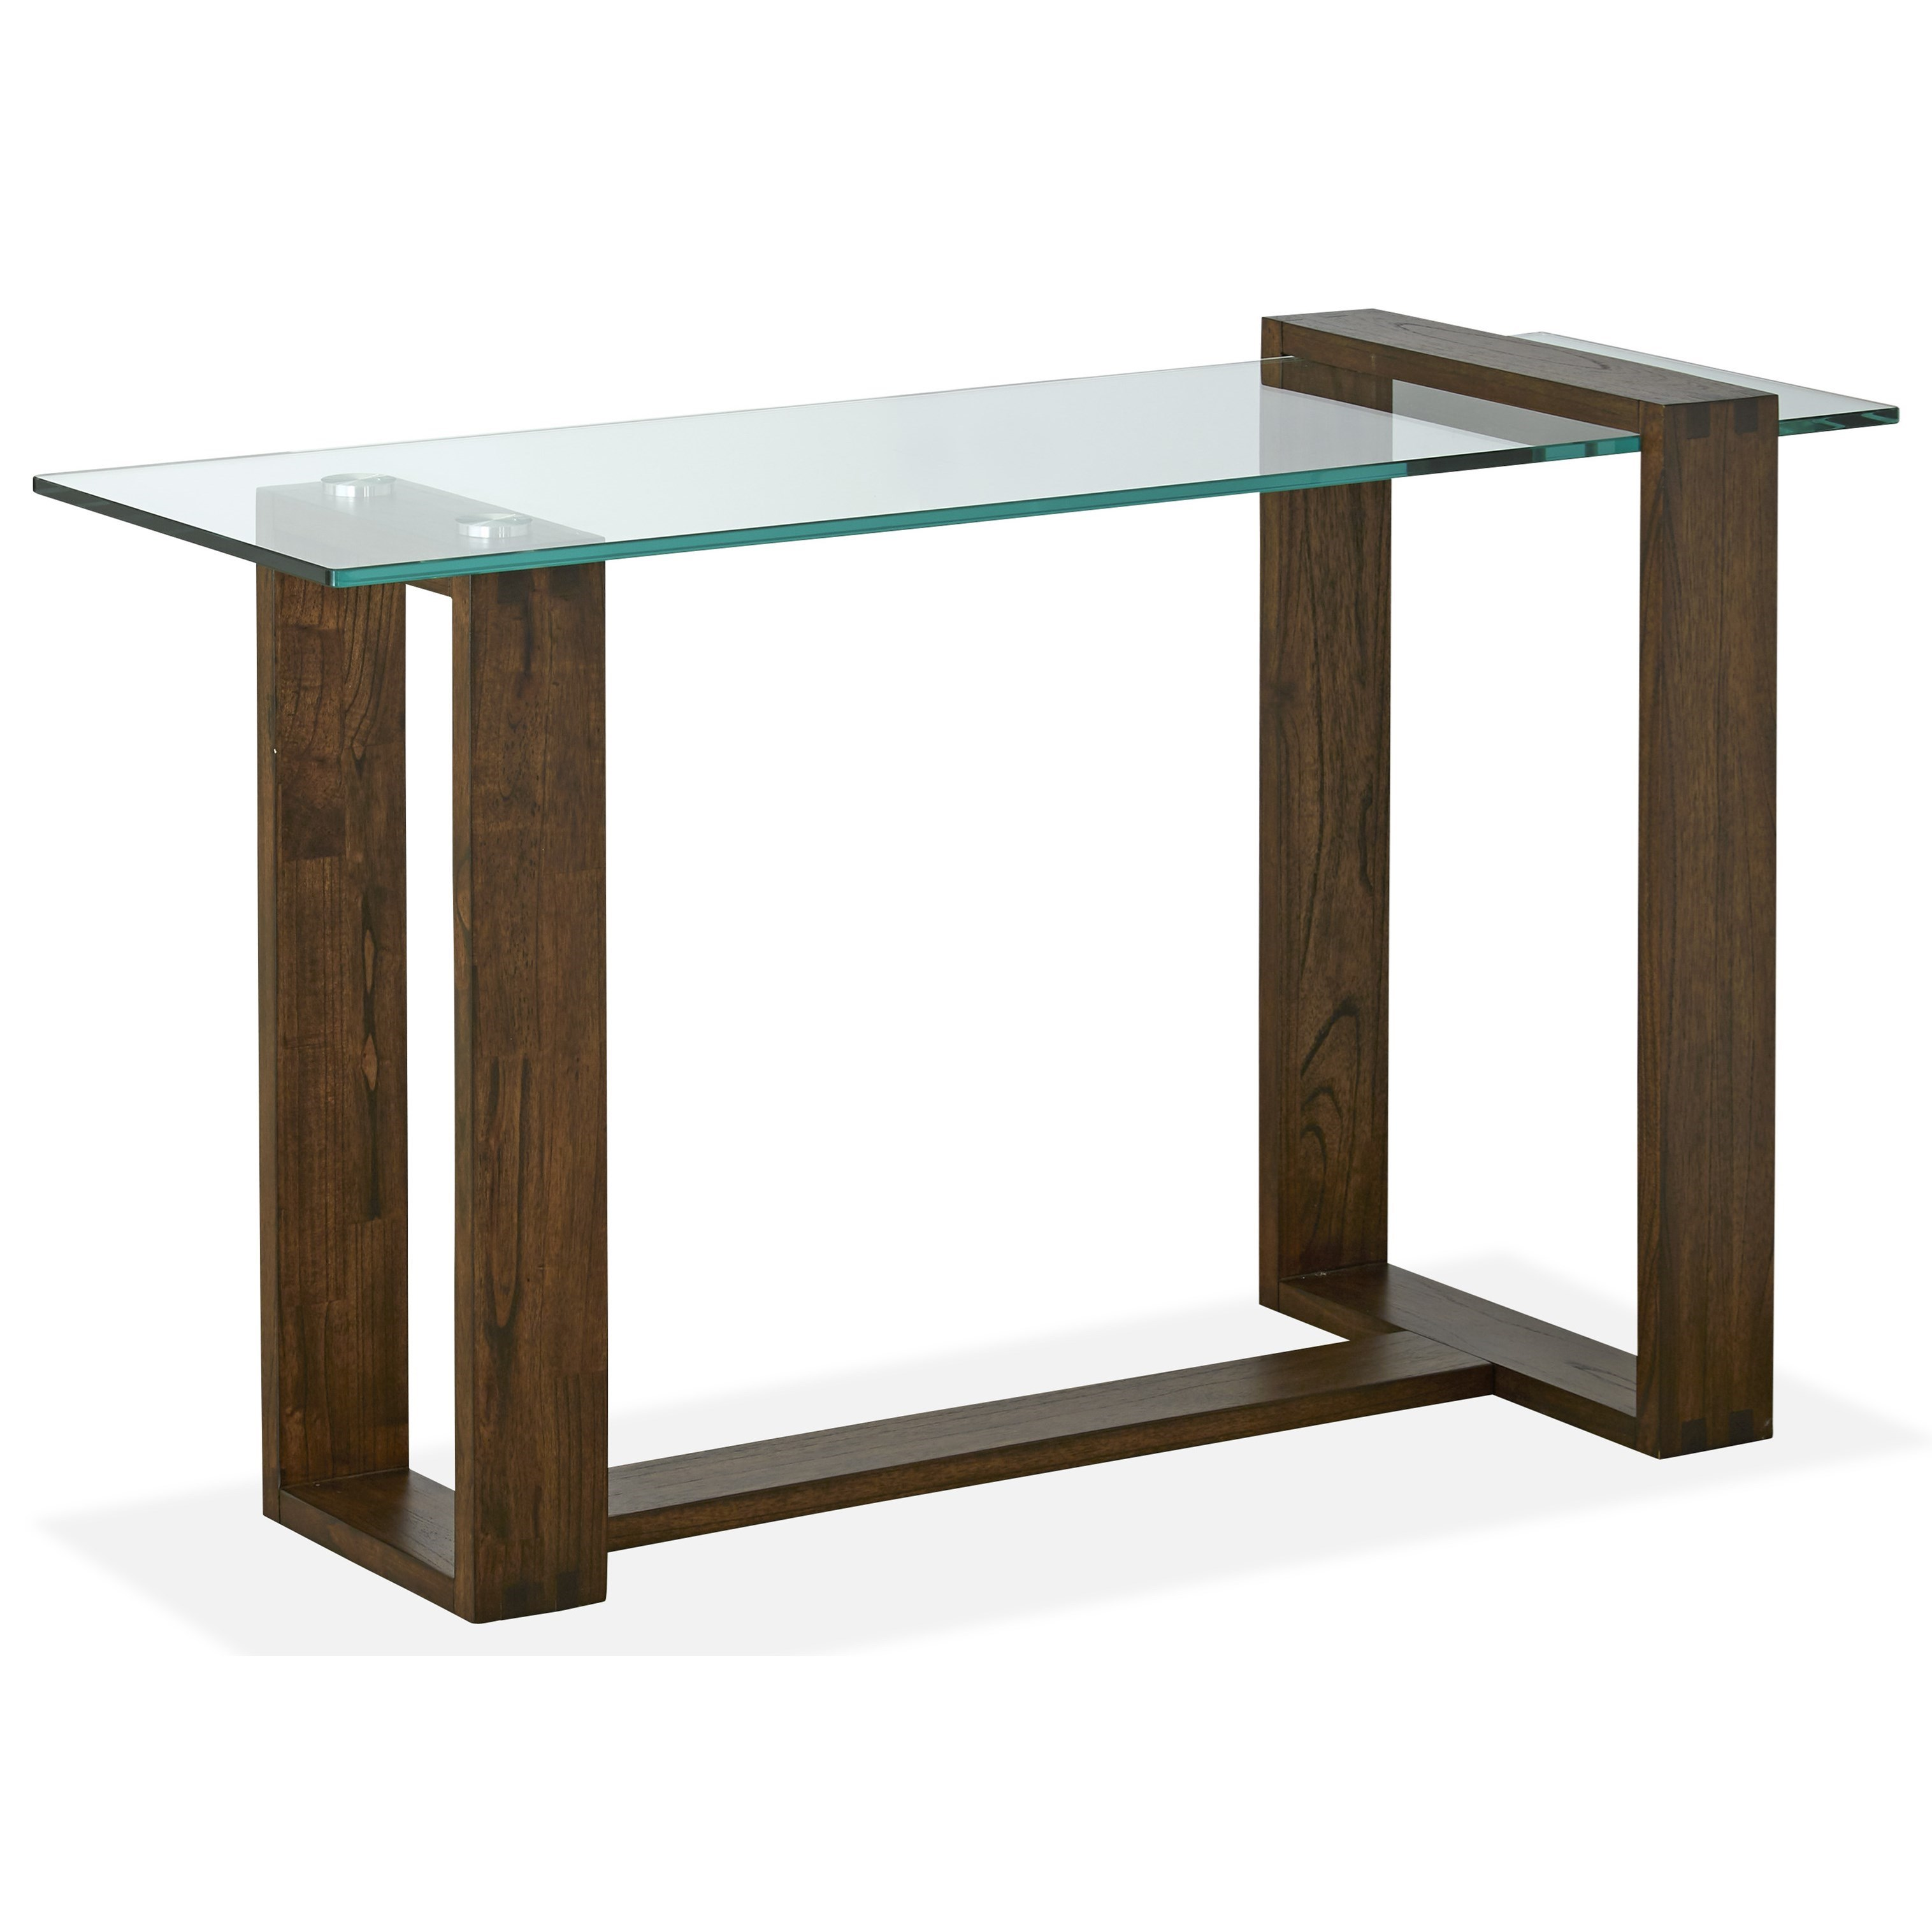 Bristow Rectangular Sofa Table by Magnussen Home at Baer's Furniture